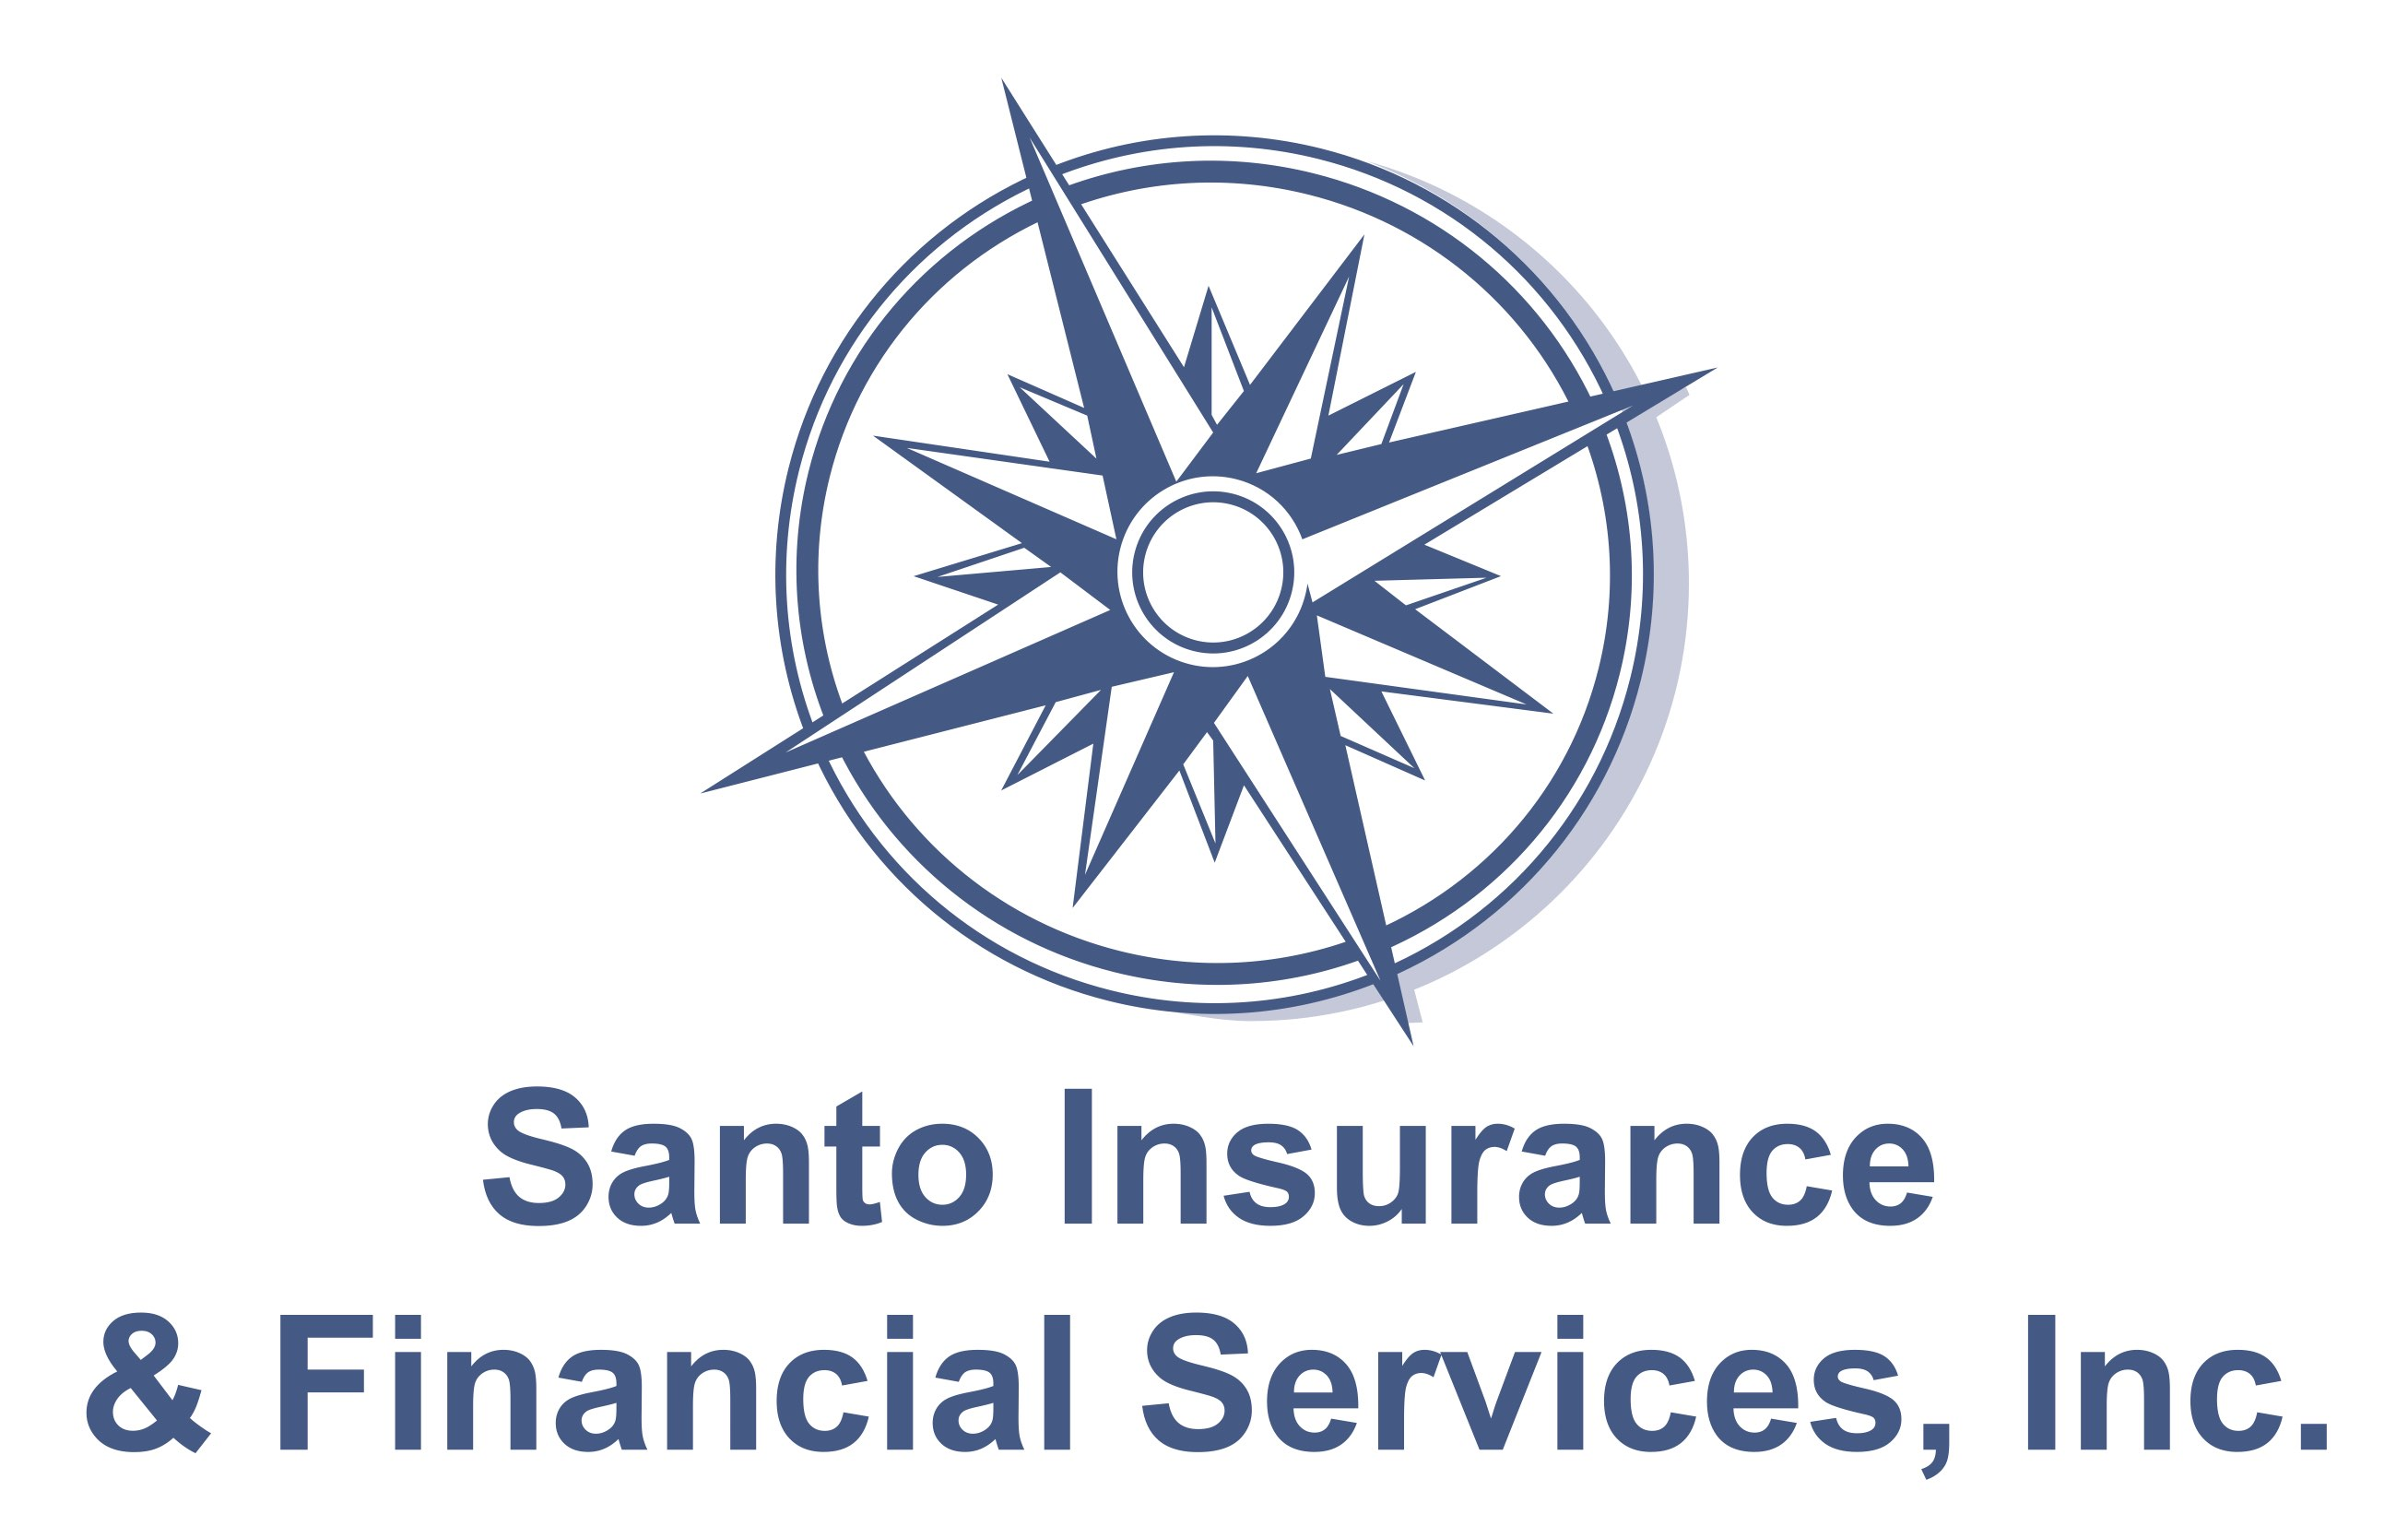 SILVER - Santo Insurance & Financial Services, Inc.